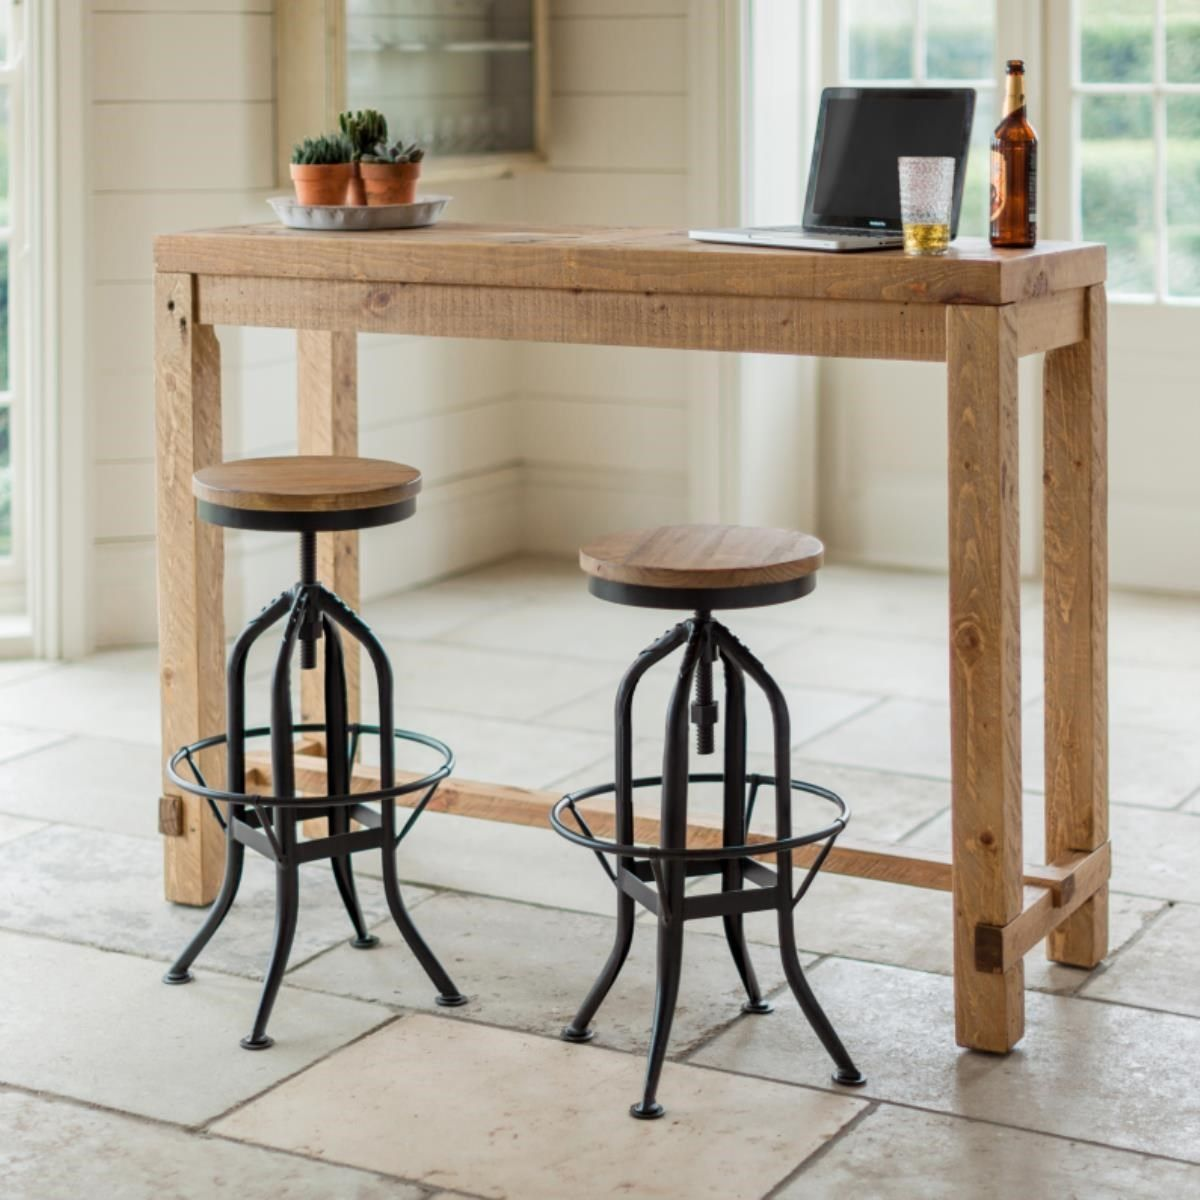 Tall Table A Tall Bar Table Handcrafted From Reclaimed Pine In A